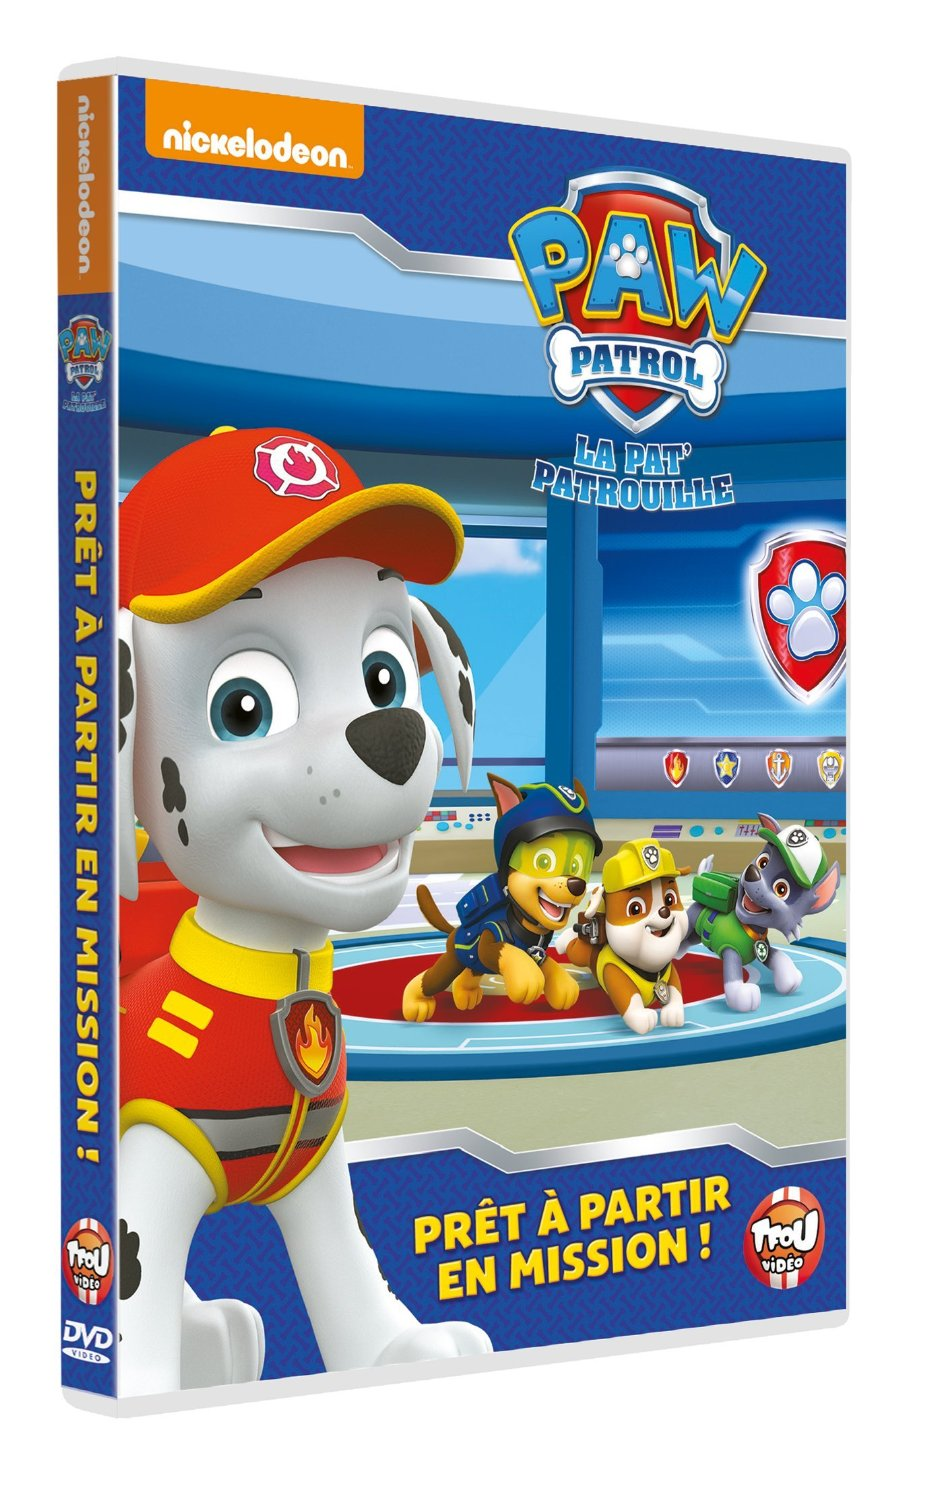 image paw patrol la pat 39 patrouille pr t partir en mission paw patrol wiki. Black Bedroom Furniture Sets. Home Design Ideas